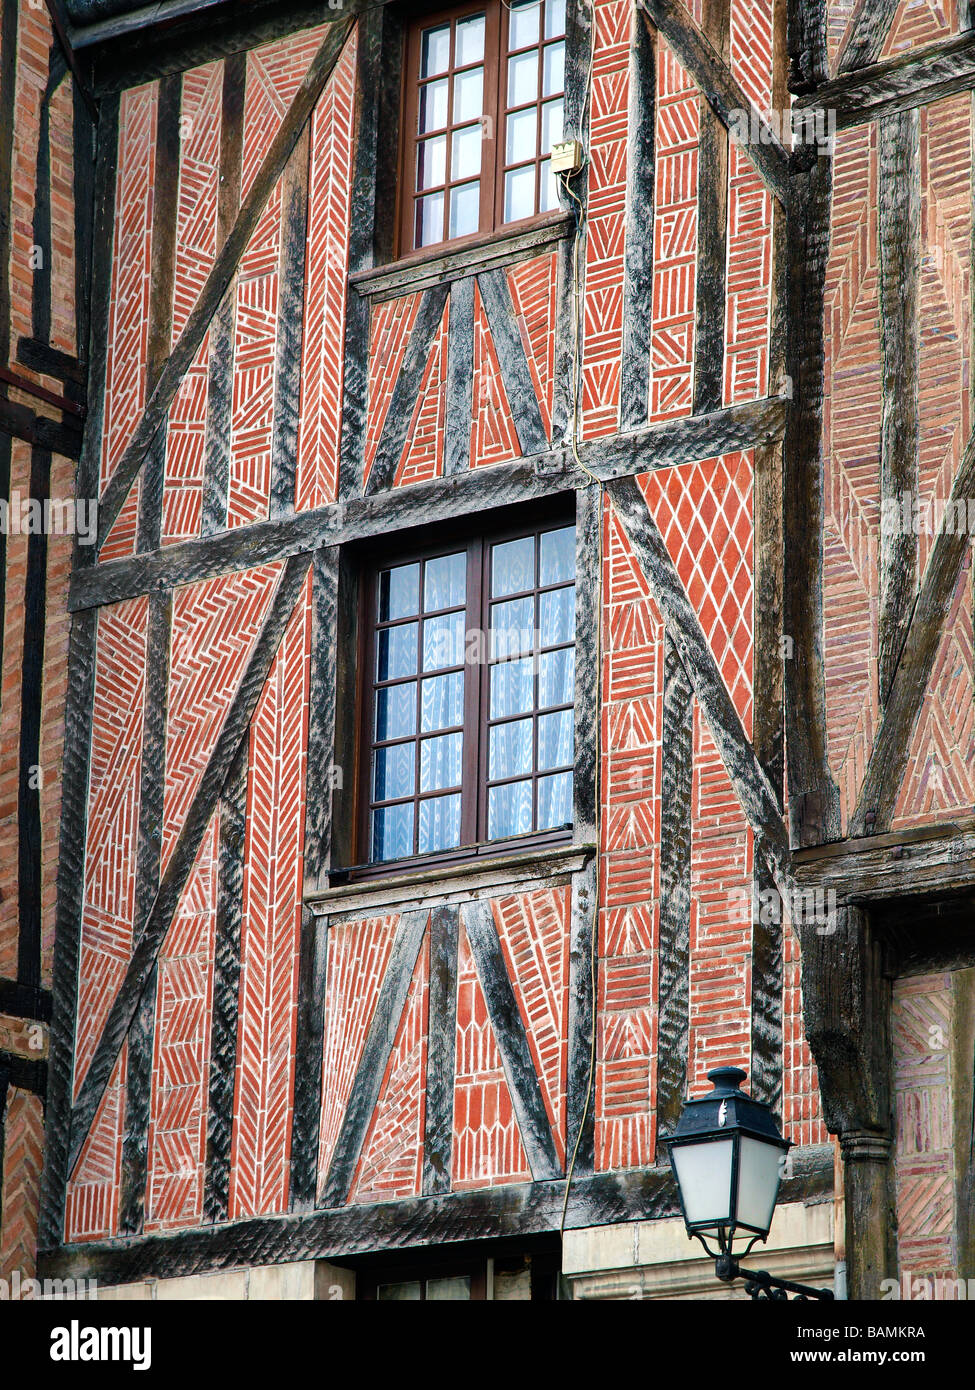 Typical frontage at Tours, France. - Stock Image